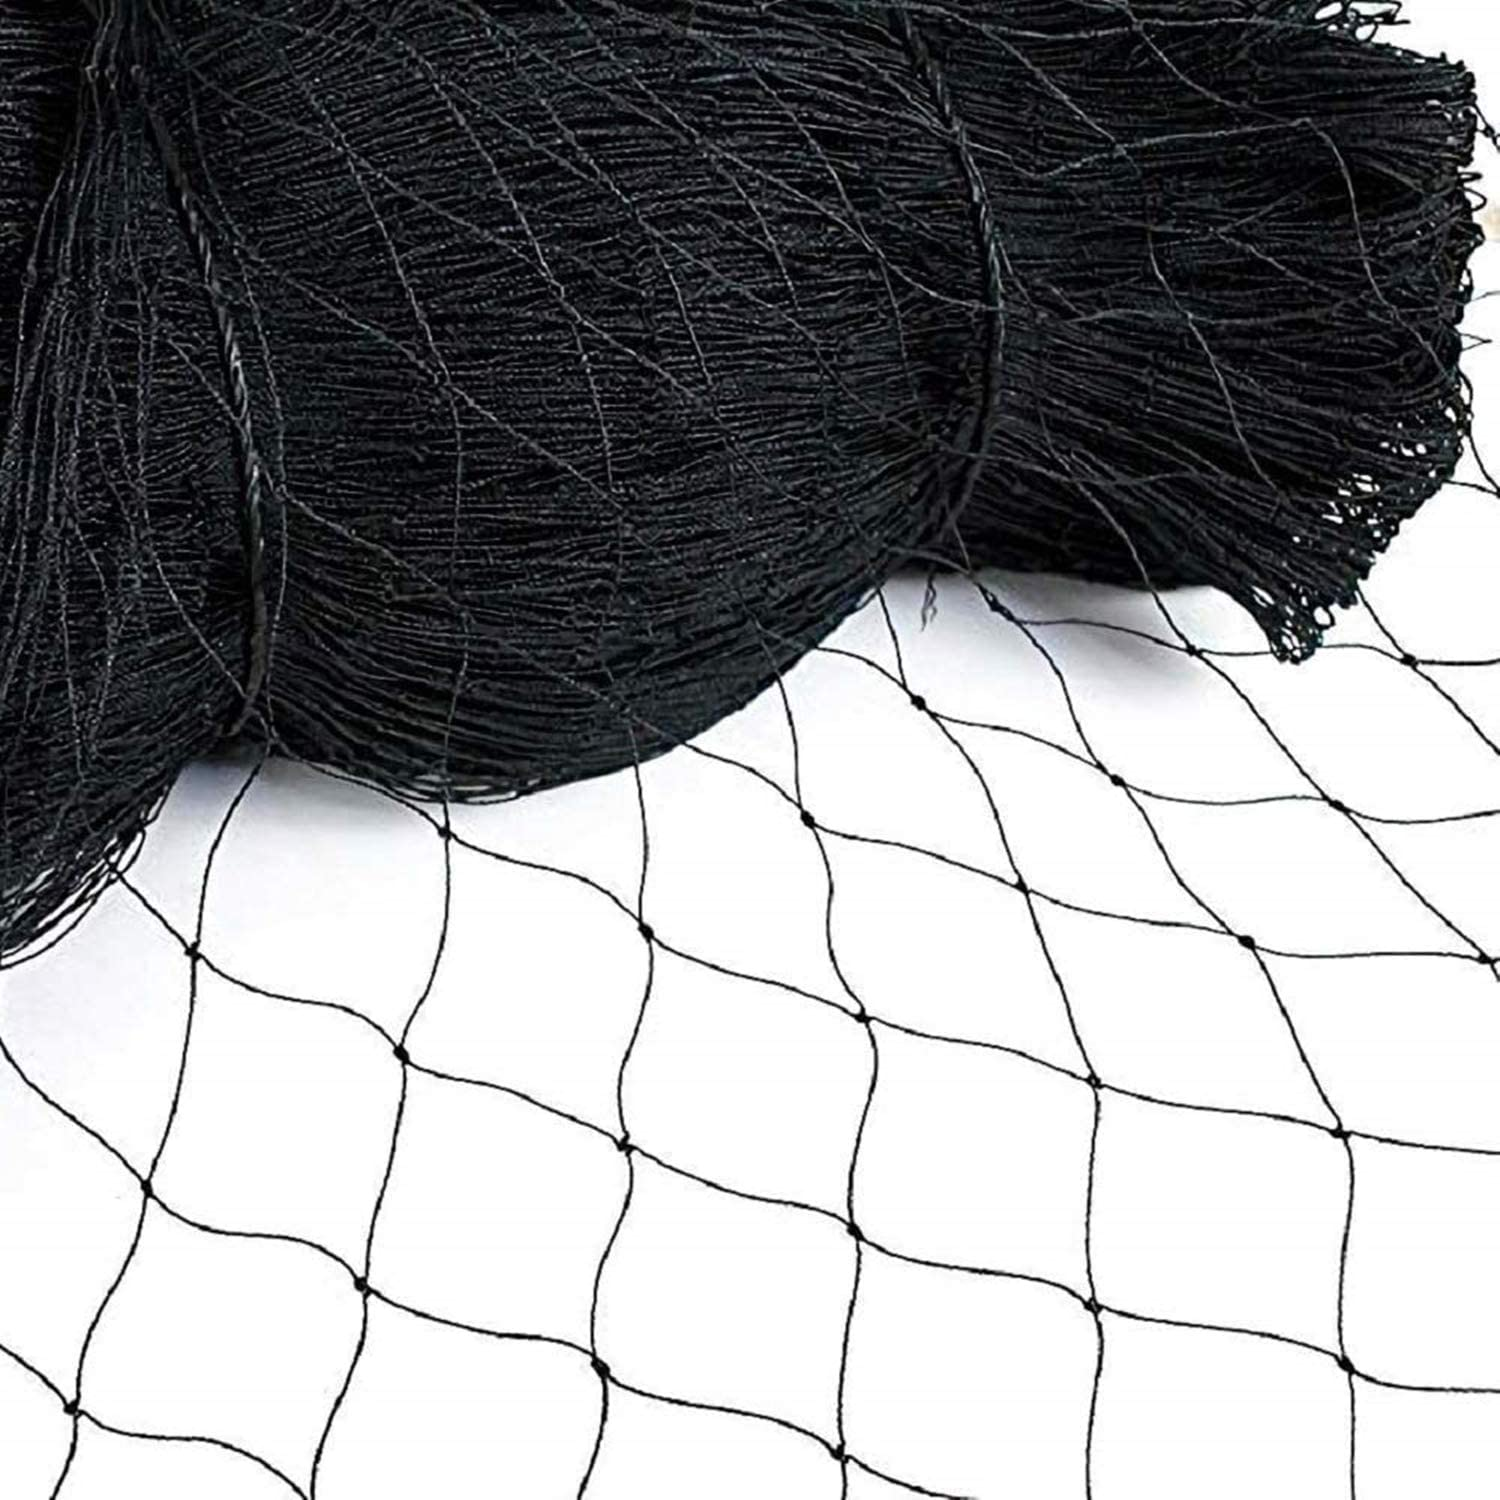 """Vosfast 50' X 50' Bird Netting for Bird Poultry Aviary Game Pens New 2.4"""" Square Mesh Size to Protect Fruit Trees Plants,Suitable for Gardens, Farms, Orchards, etc."""